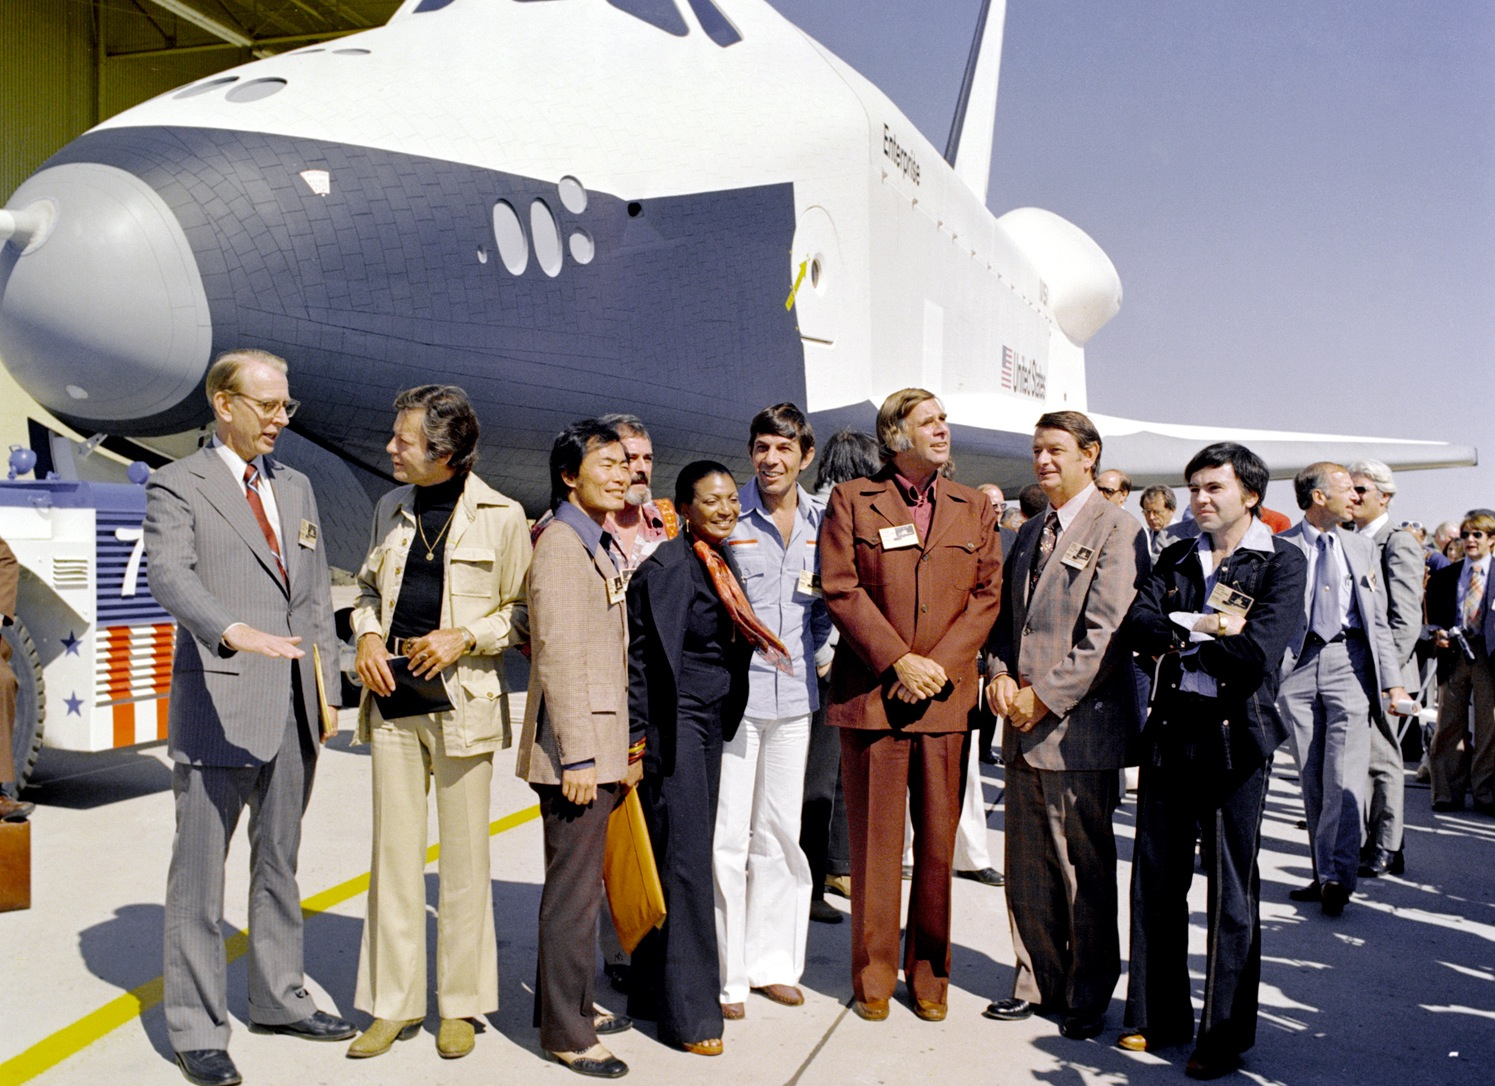 Star Trek influenced generations of scientists and explorers ( including me ). NASA even named the first space shuttle after Captain Kirk's U.S.S. Enterprise.